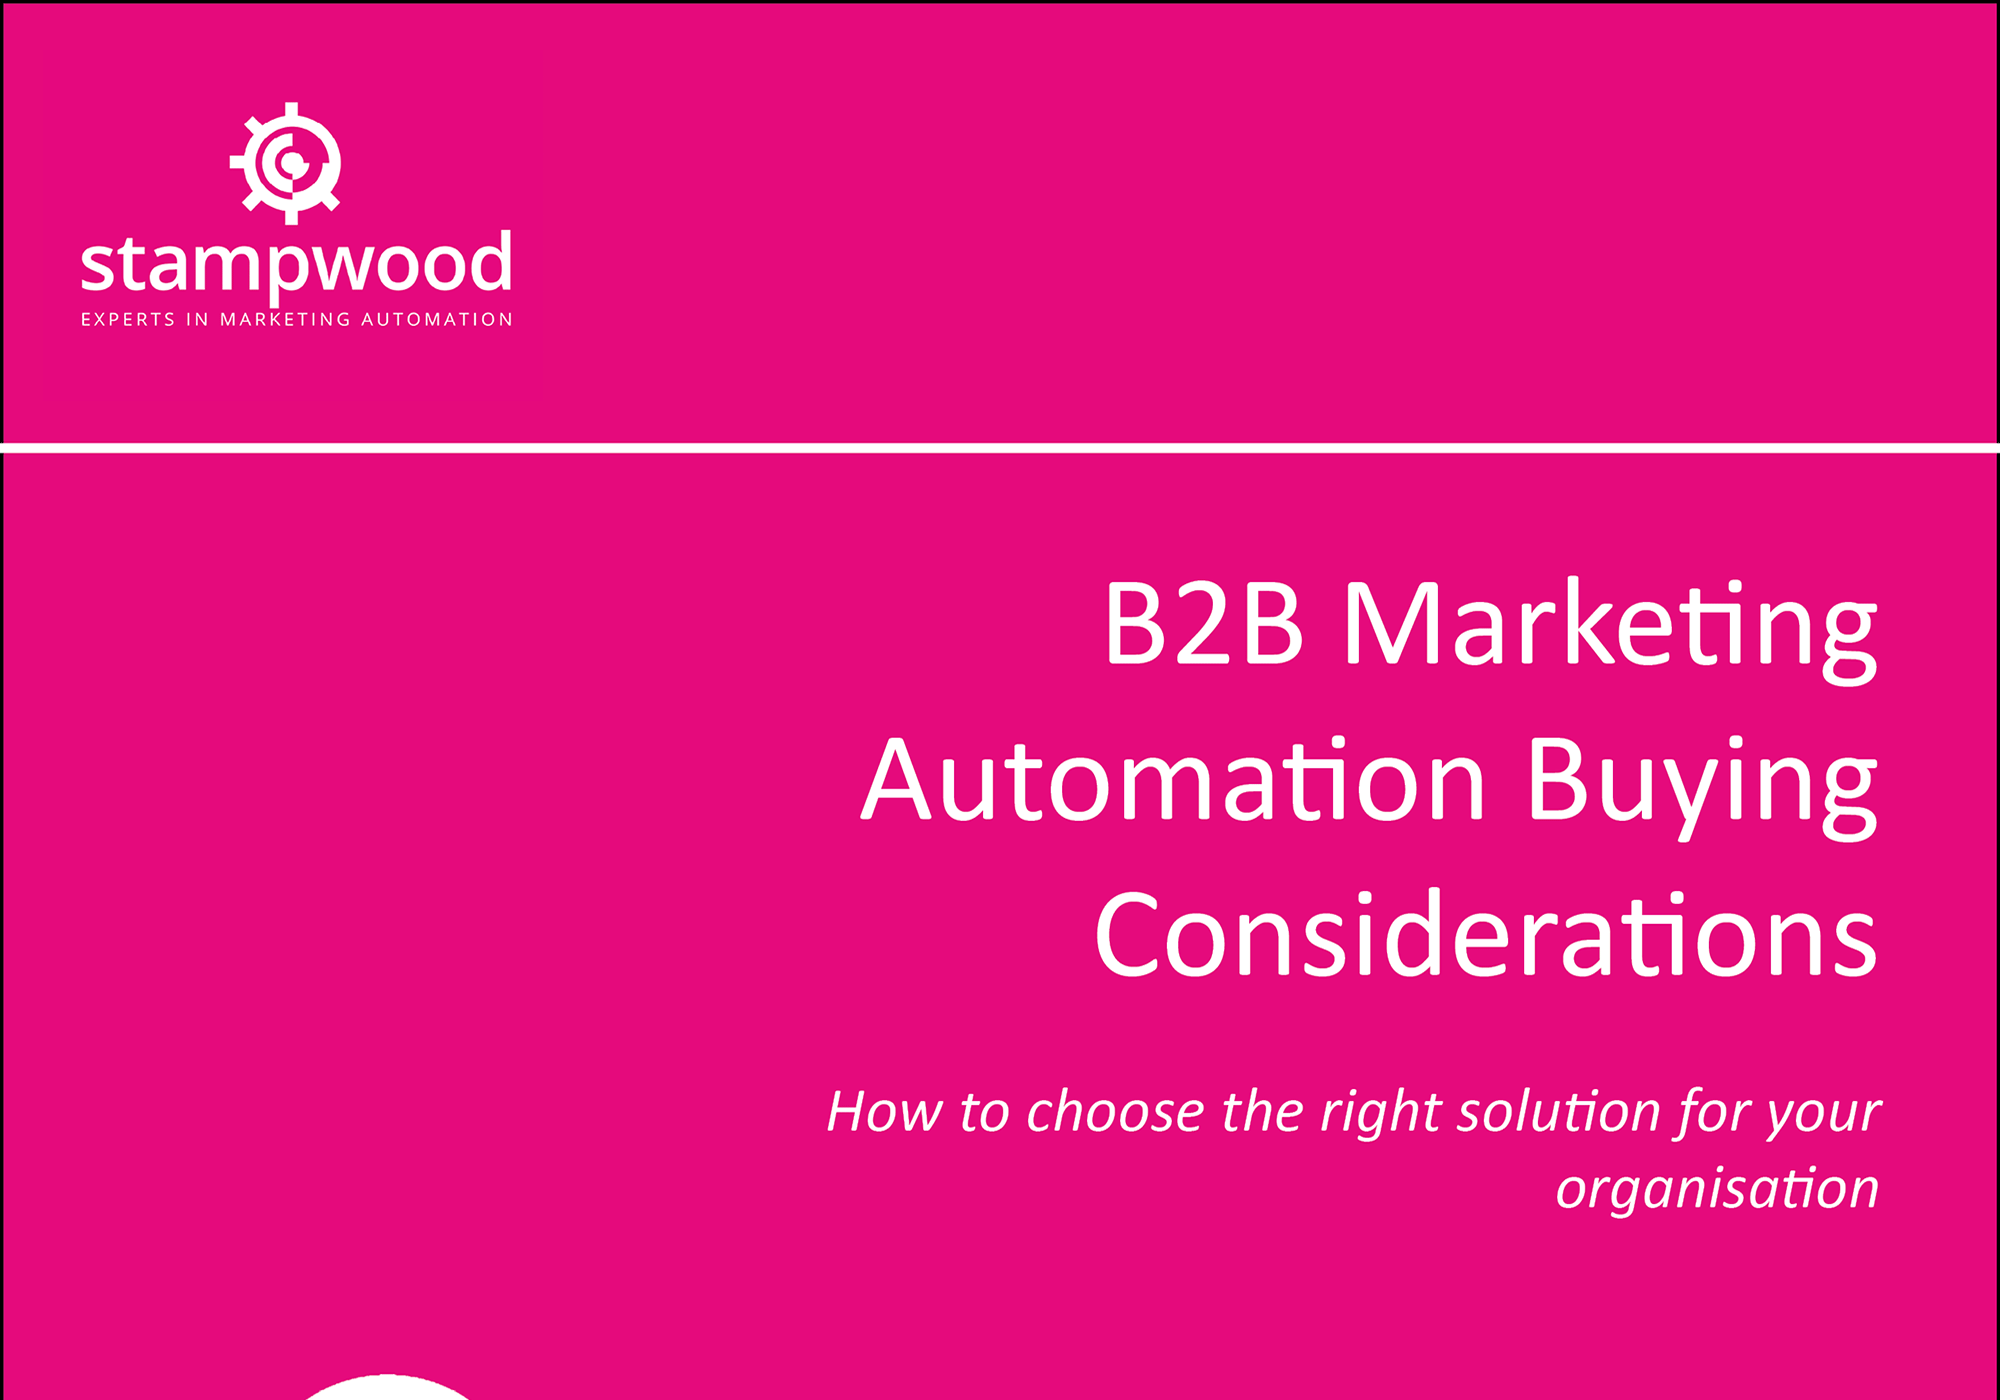 b2b marketing automation buying considerations front page